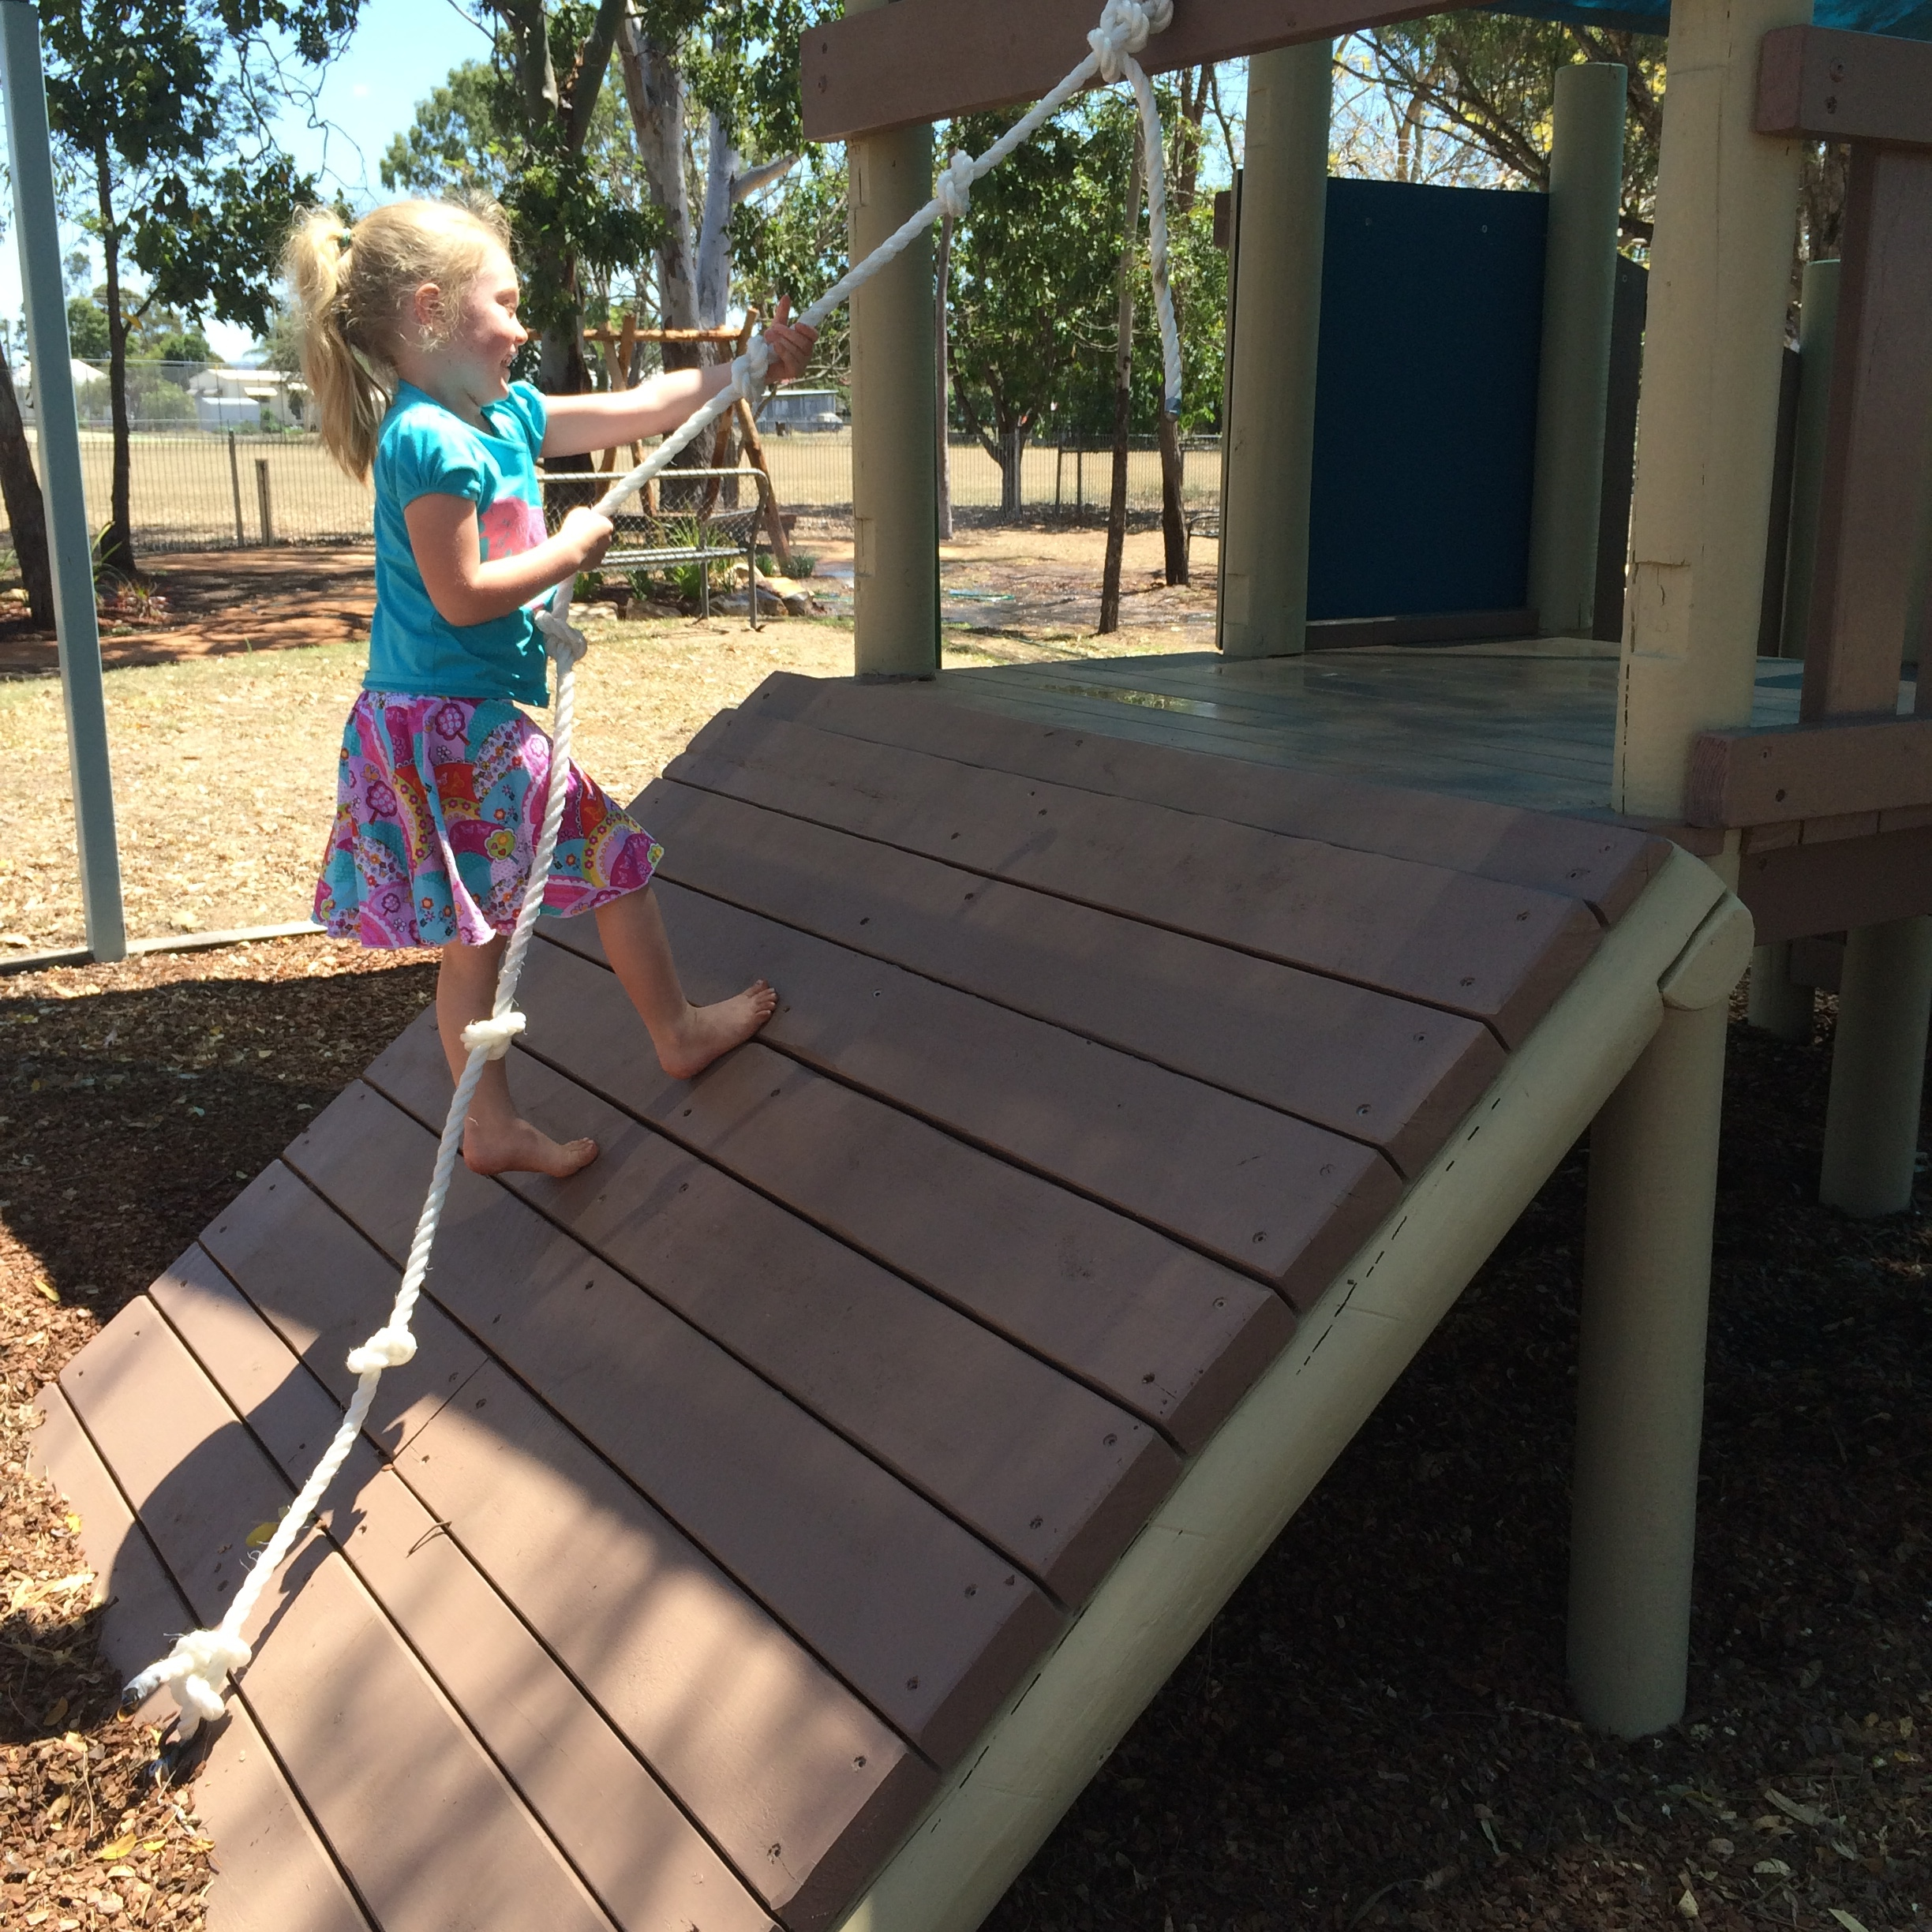 Mackenzie gives the new climb ramp a workout.